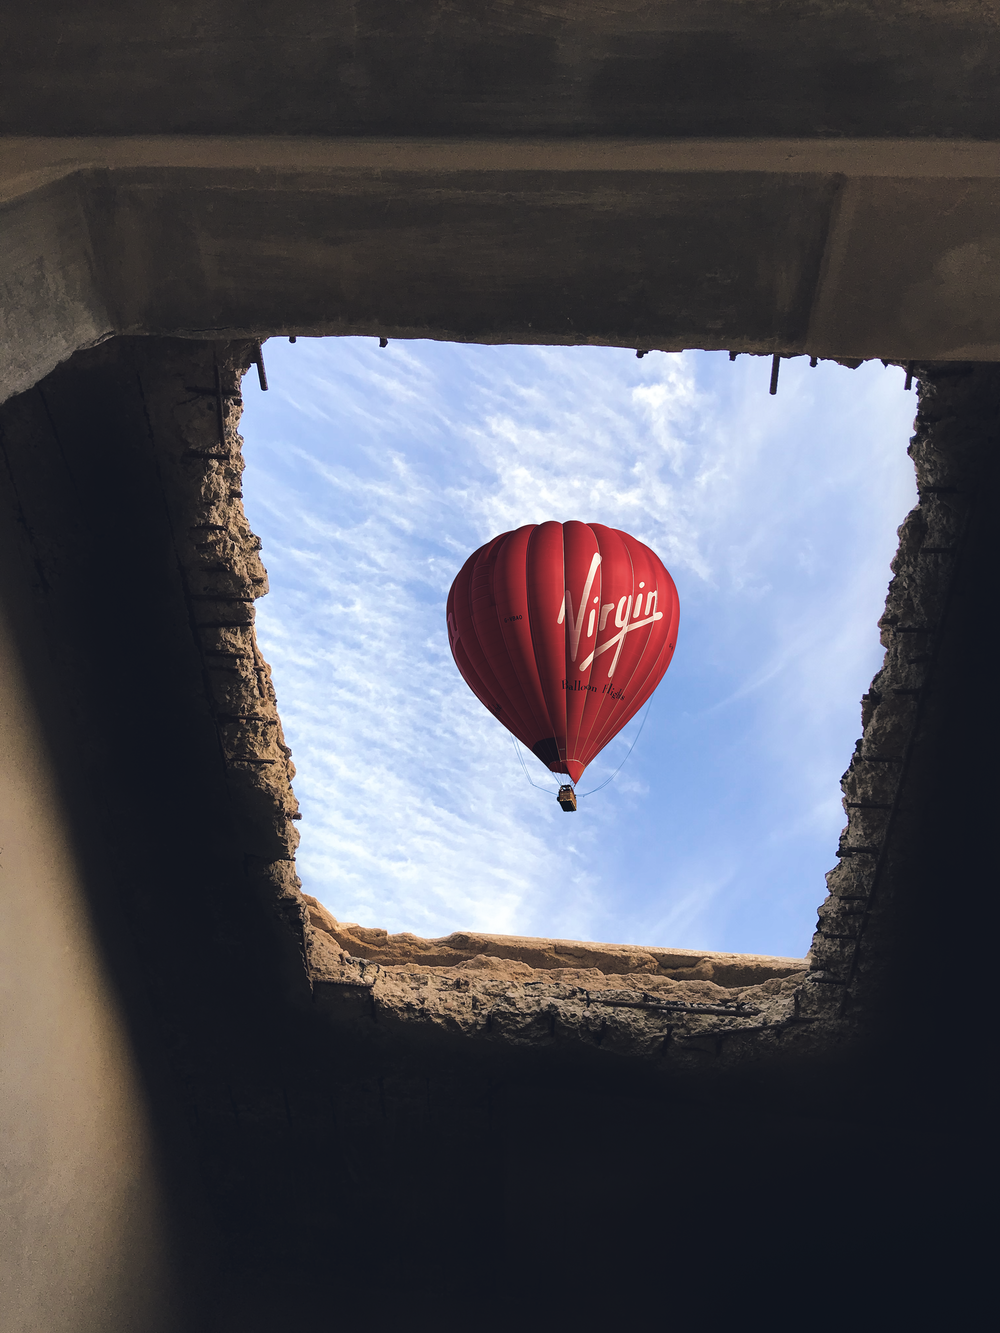 tunnel view of red hot air balloon